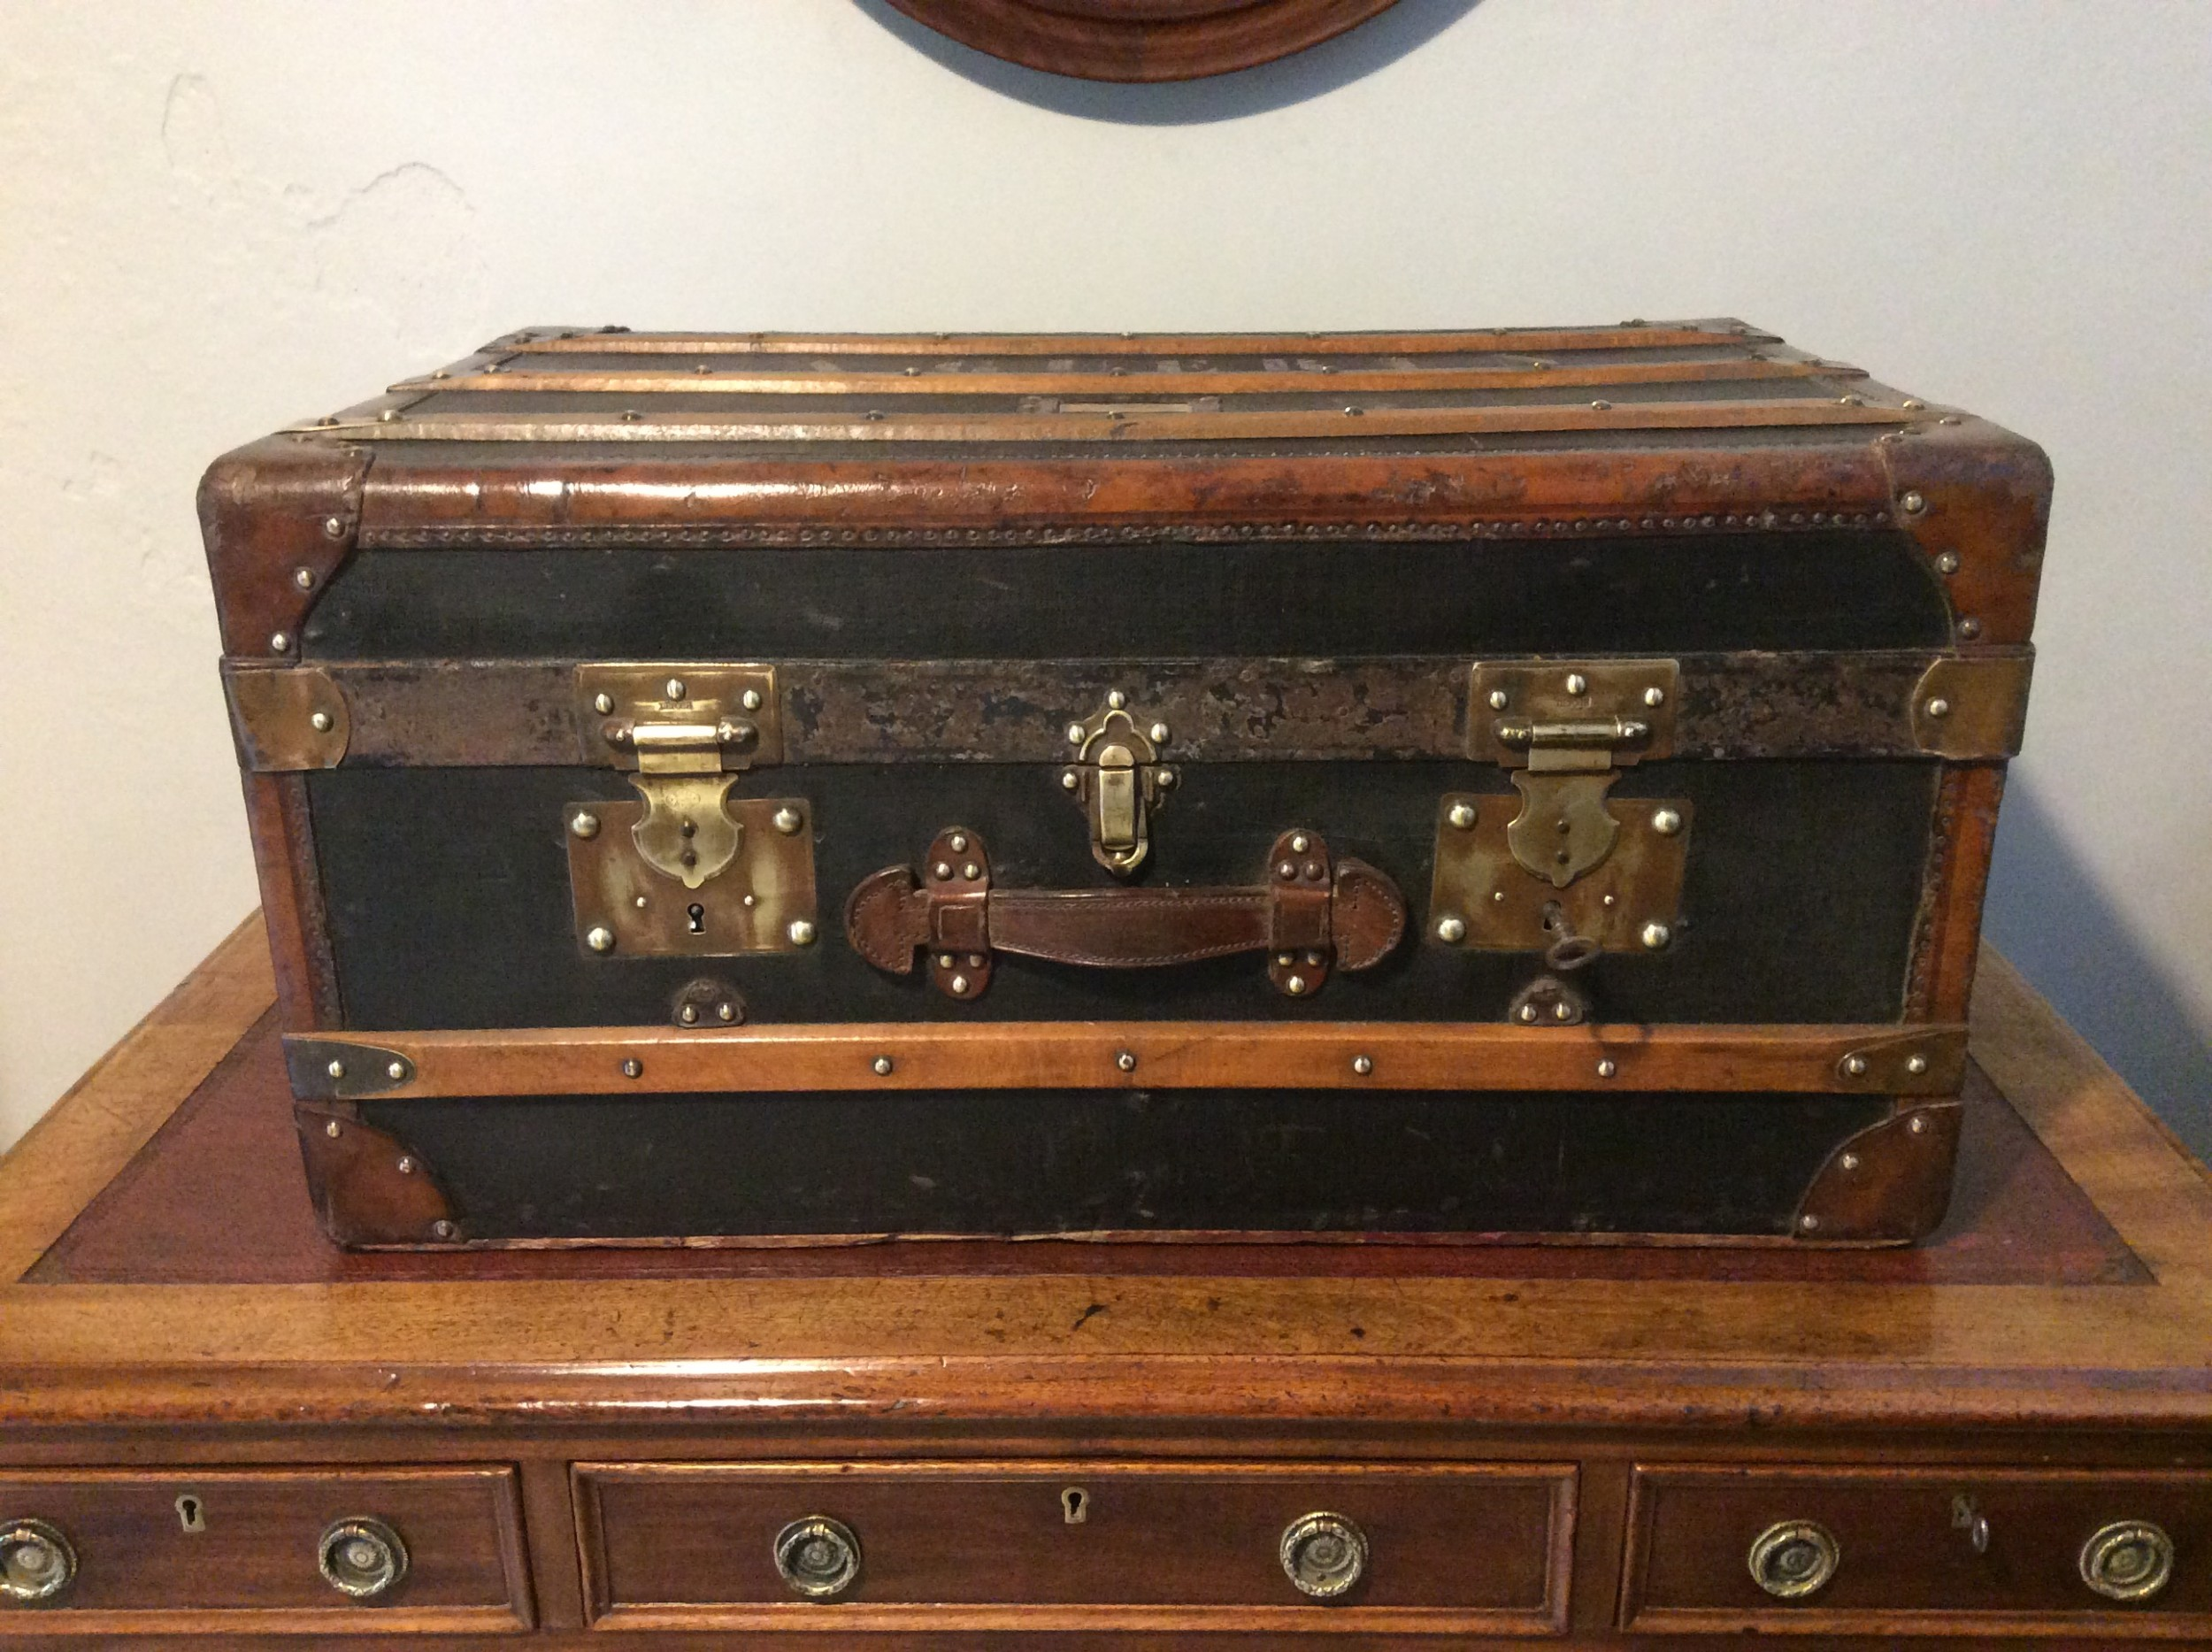 a french travelling trunk